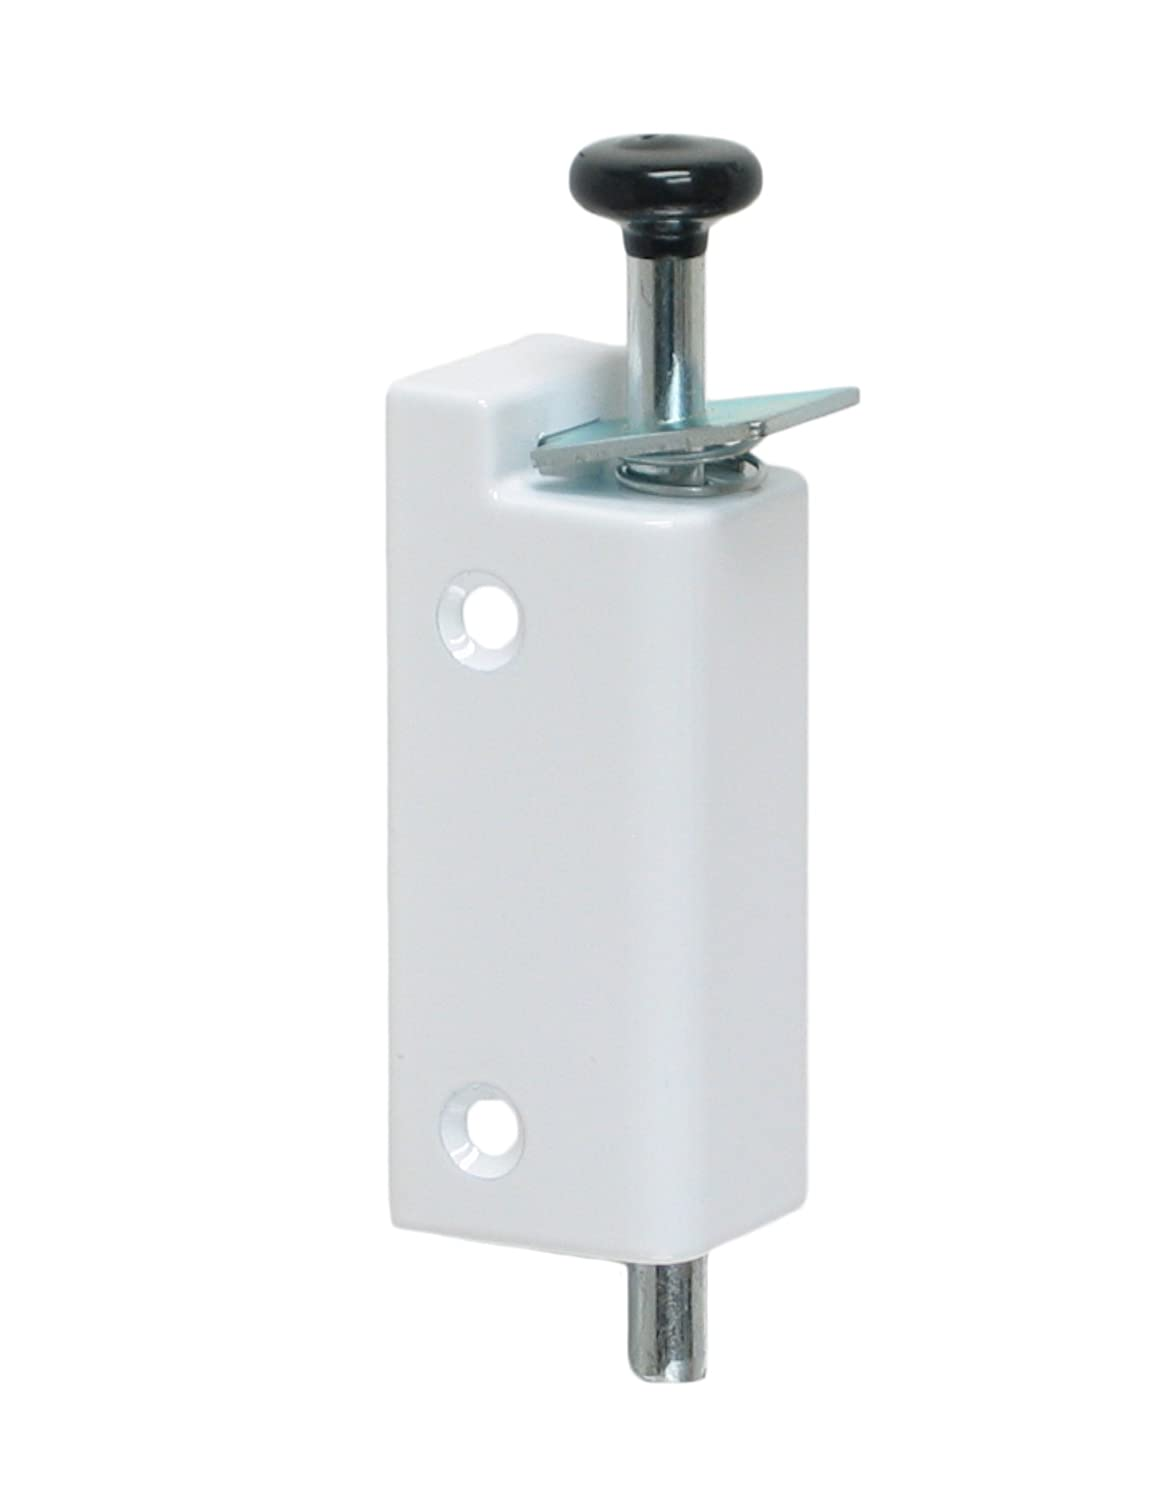 FPL Sliding Door Lock Security Foot Bolt In White   Quickly And Easily Locks  And Unlocks With Your Foot   Door Dead Bolts   Amazon.com